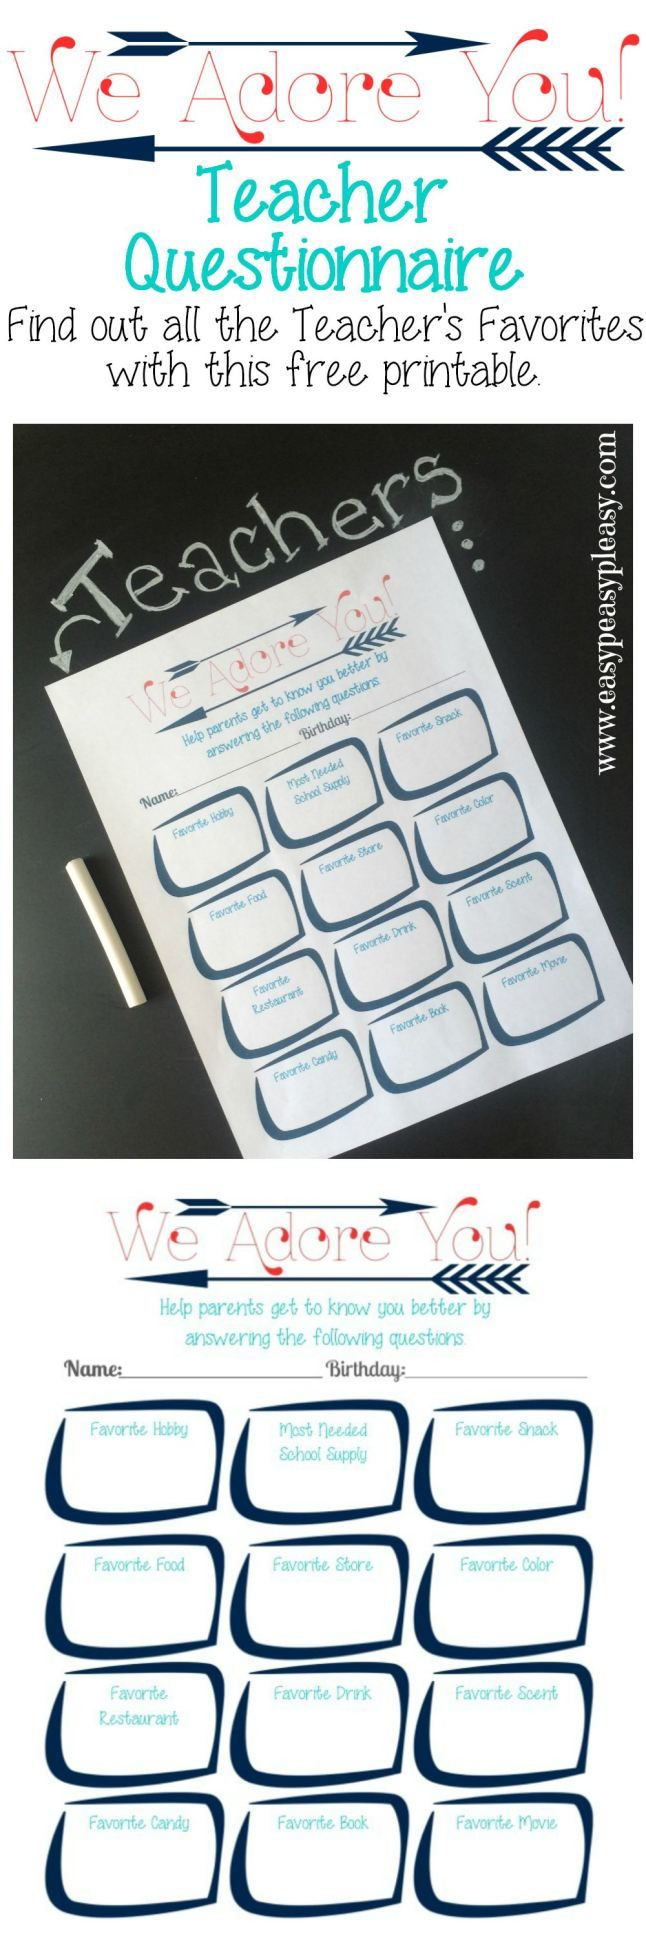 Use this free printable Teacher Questionnaire to find out all their favorite things. Parents, PTO, and PTA can use this idea to give teachers what they really like.